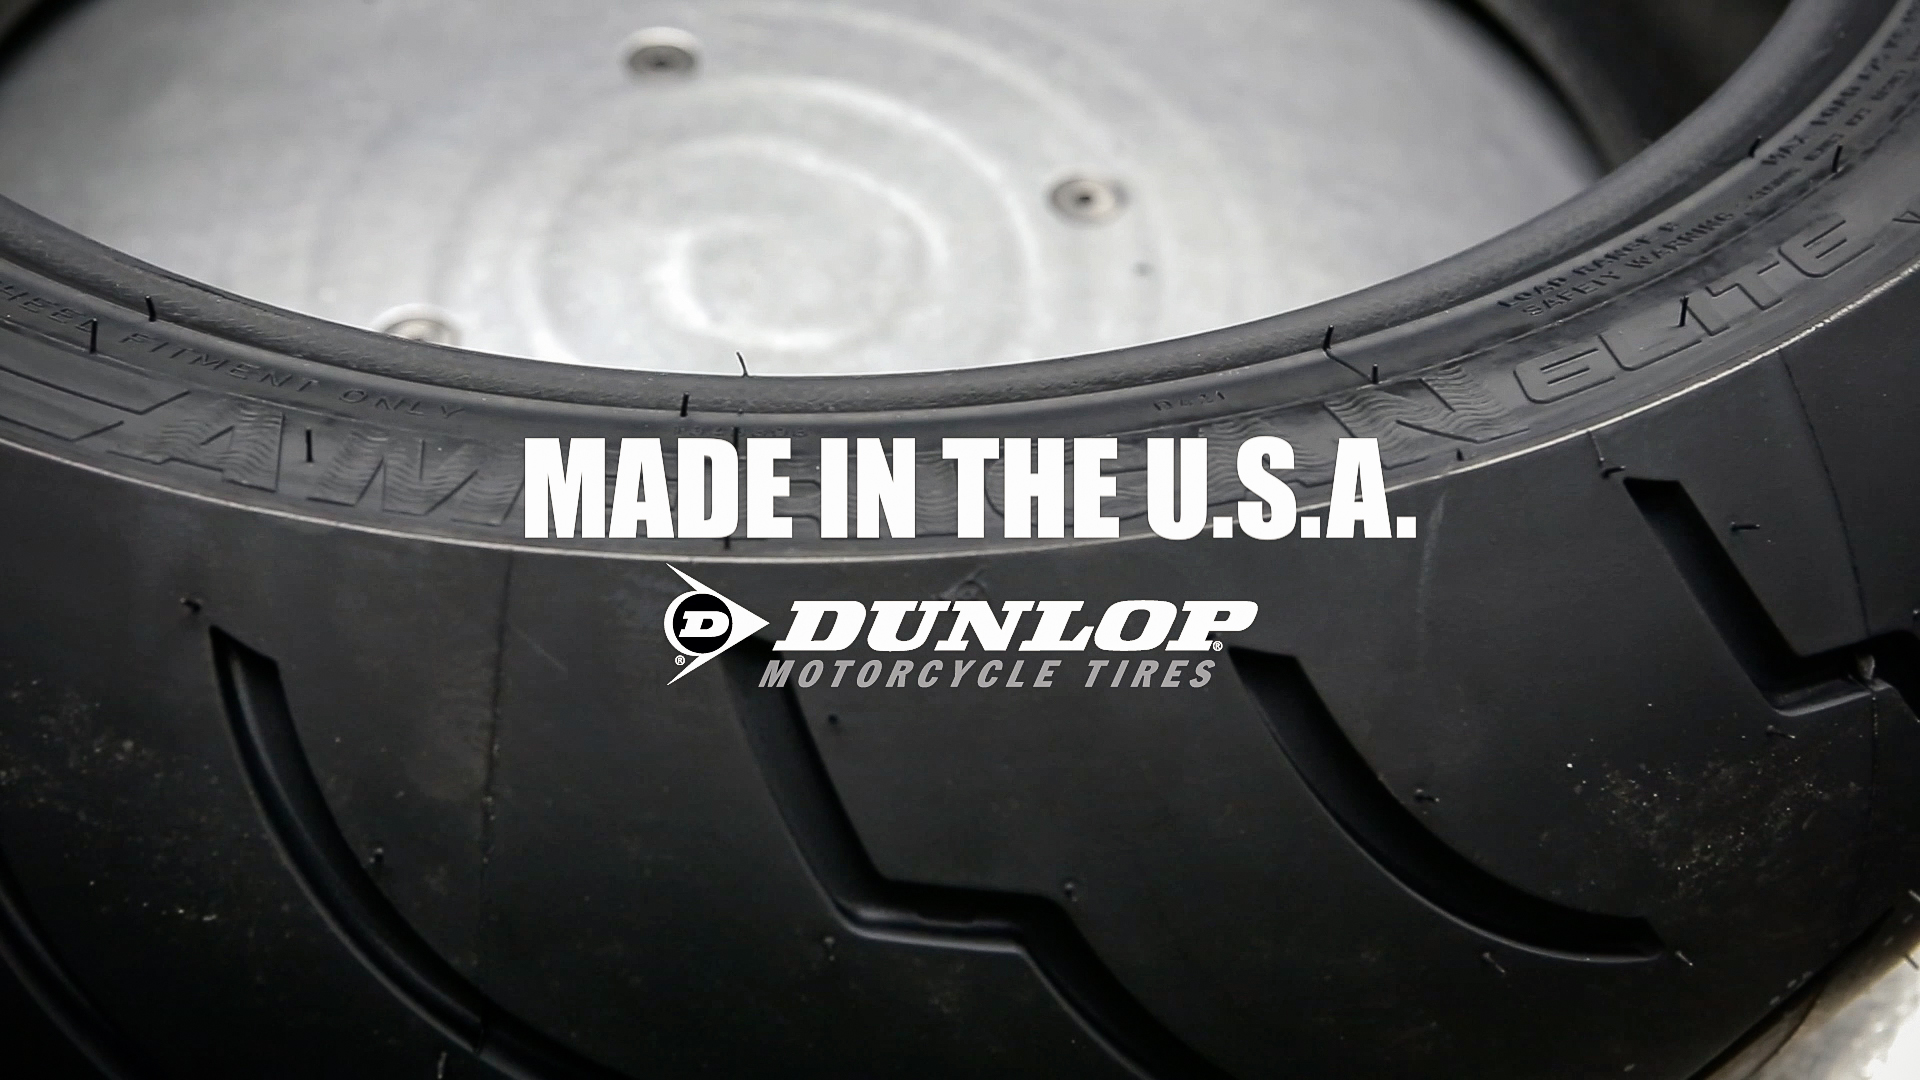 DUNLOP_USA__0005_Layer 1.jpg